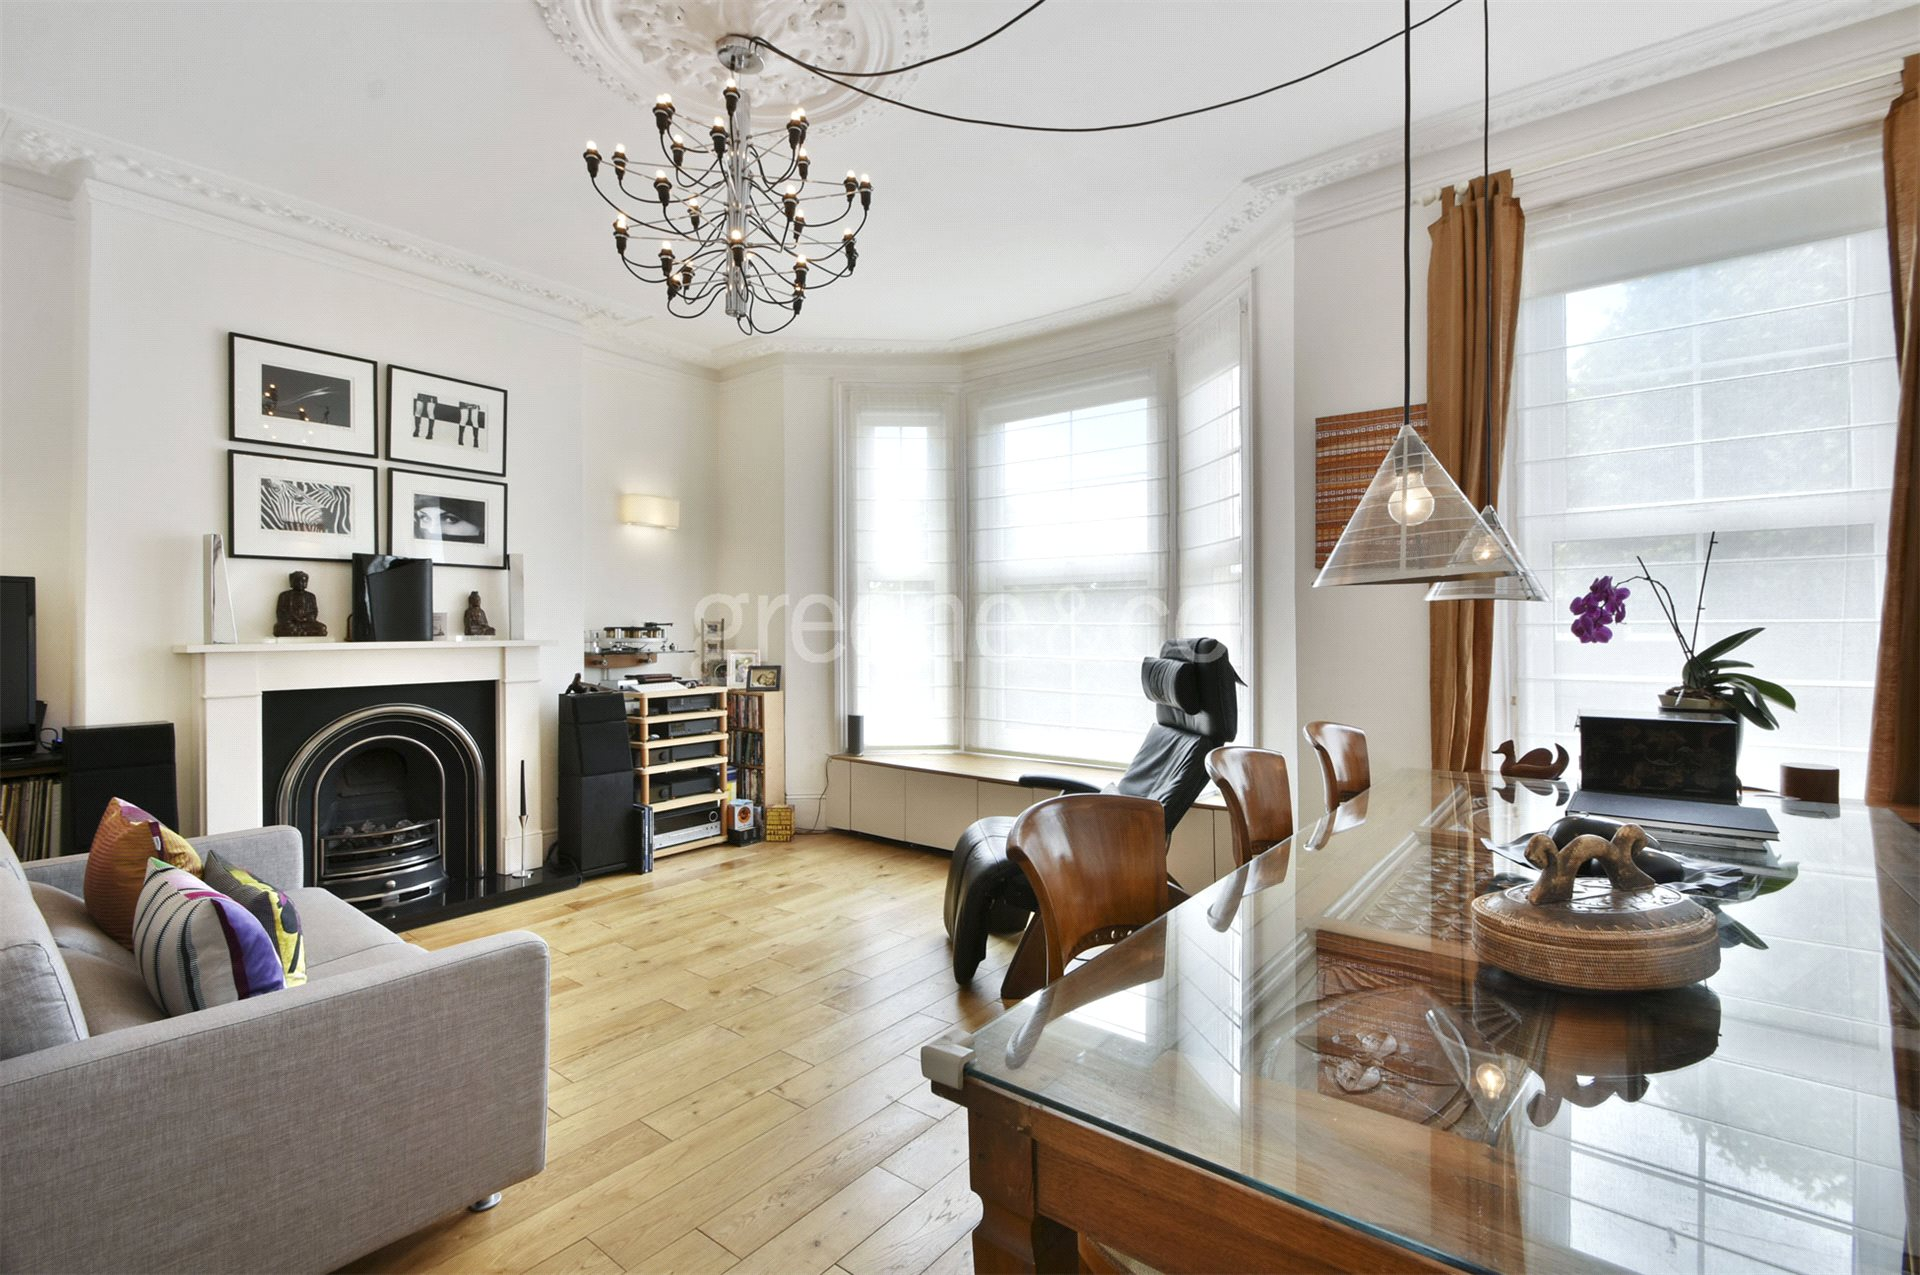 3 Bedrooms Flat for sale in Fernhead Road, Maida Vale, London, W9